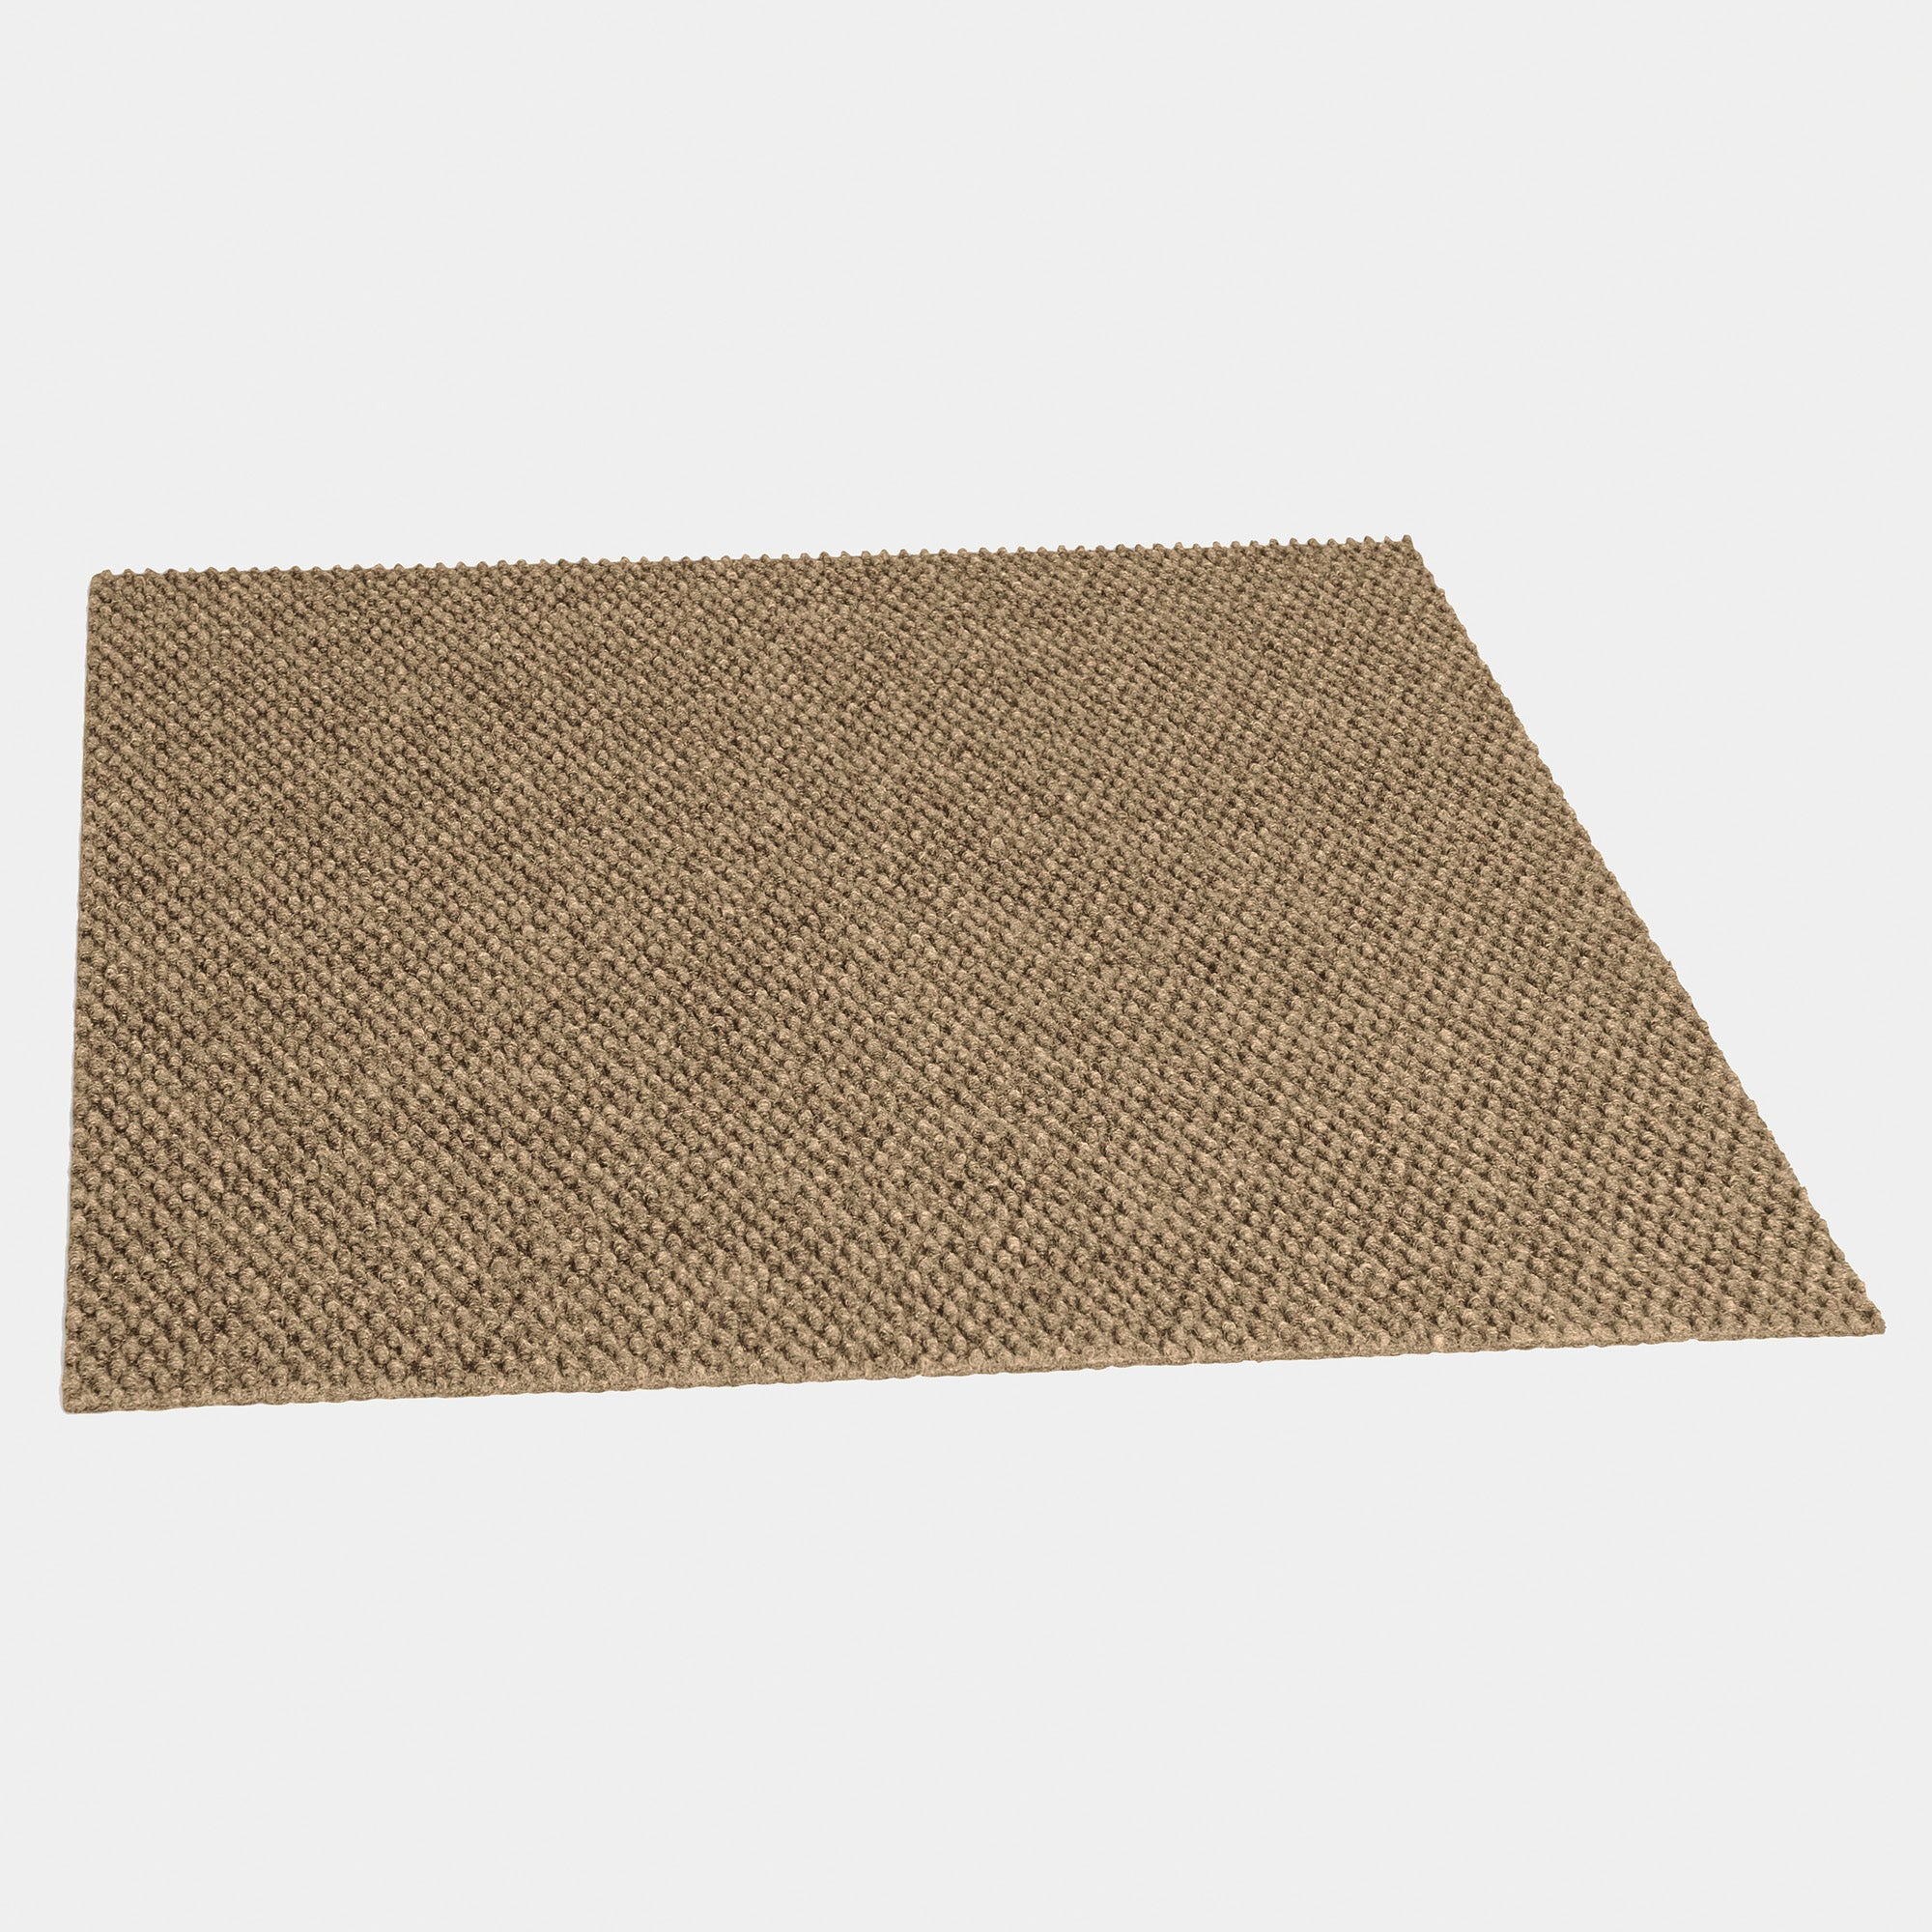 Gravity 18'' X 18'' Premium Peel And Stick Carpet Tiles (Ivory)